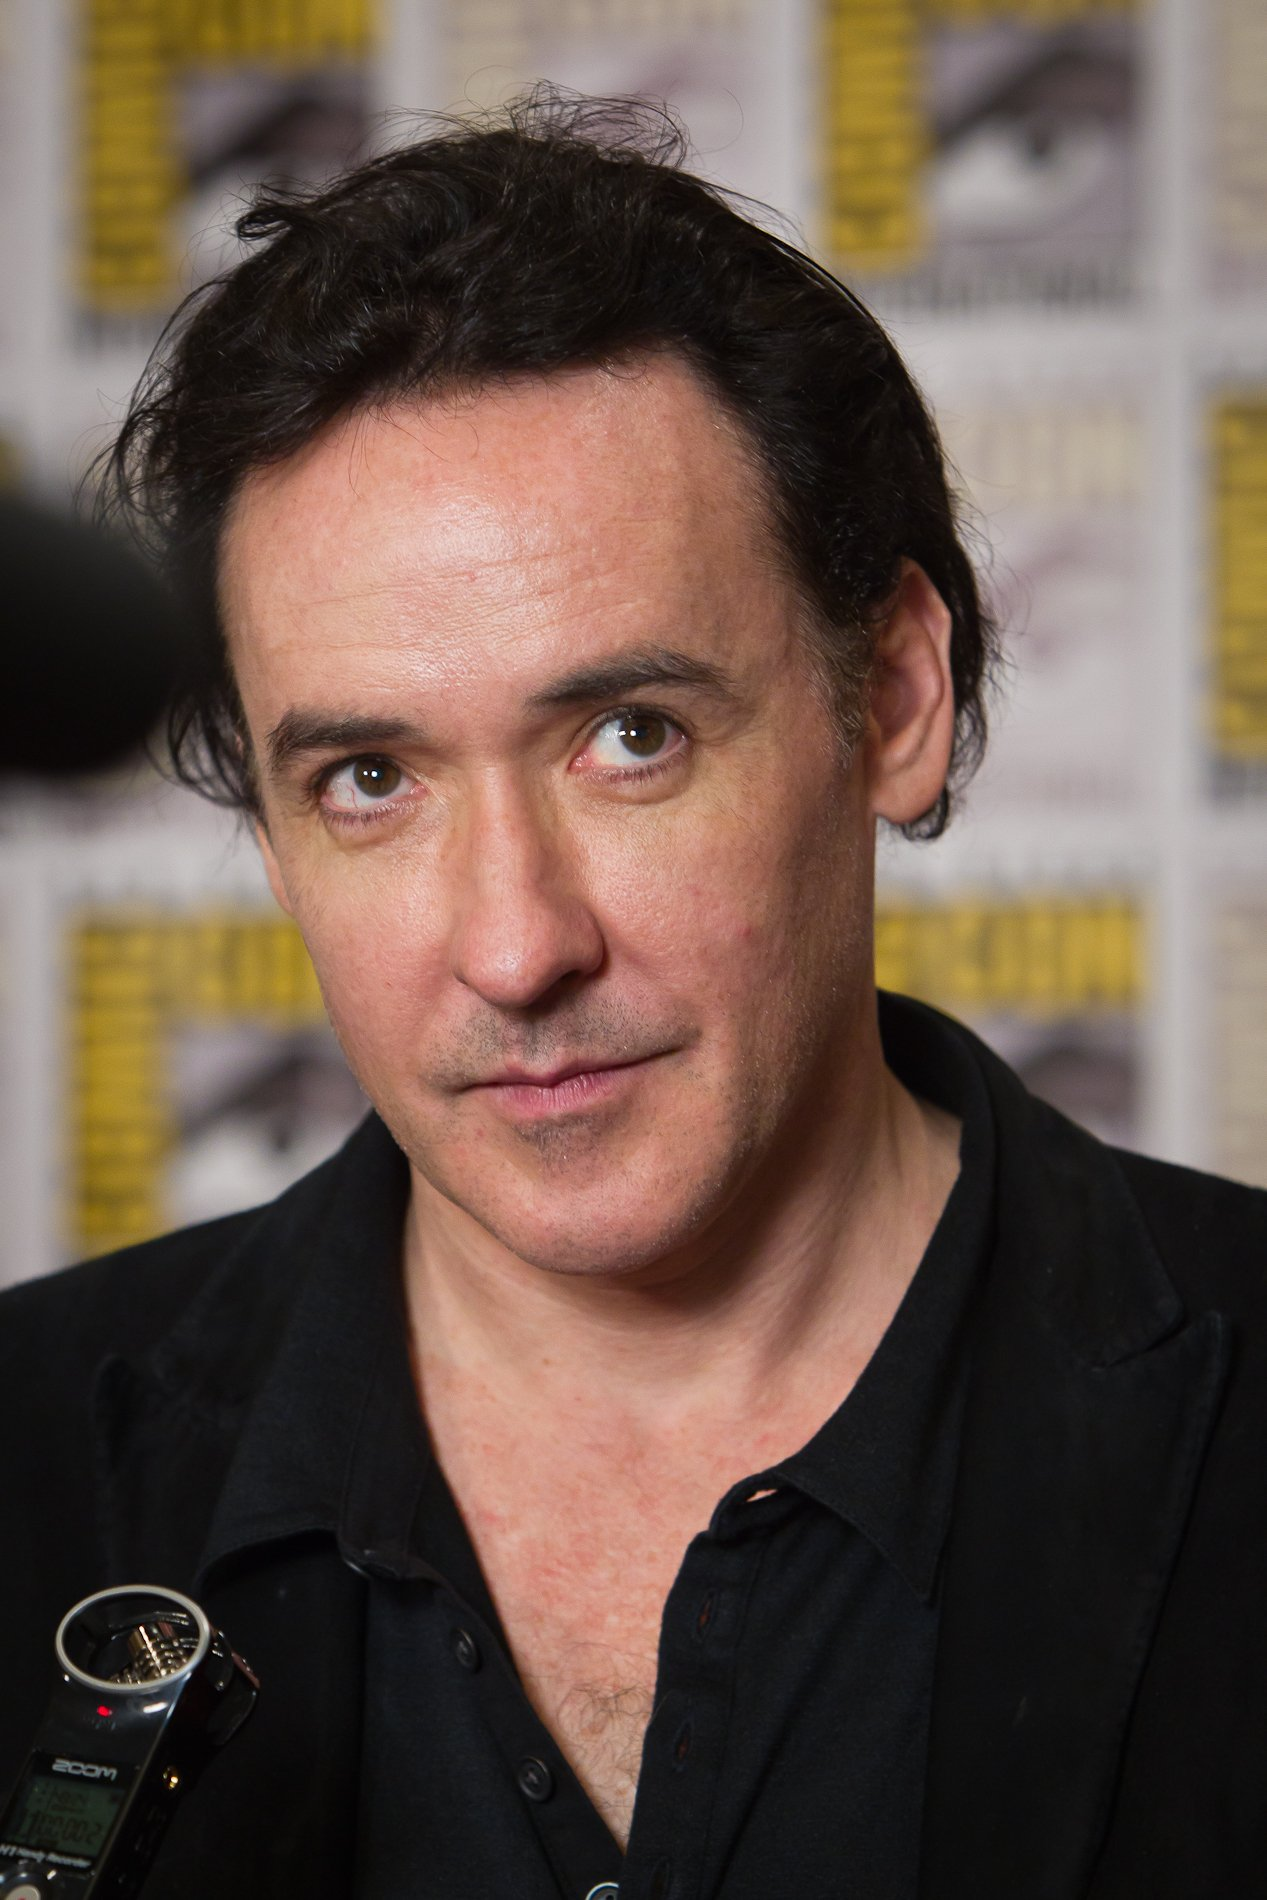 John Cusack Image Source: Wikimedia Commons.